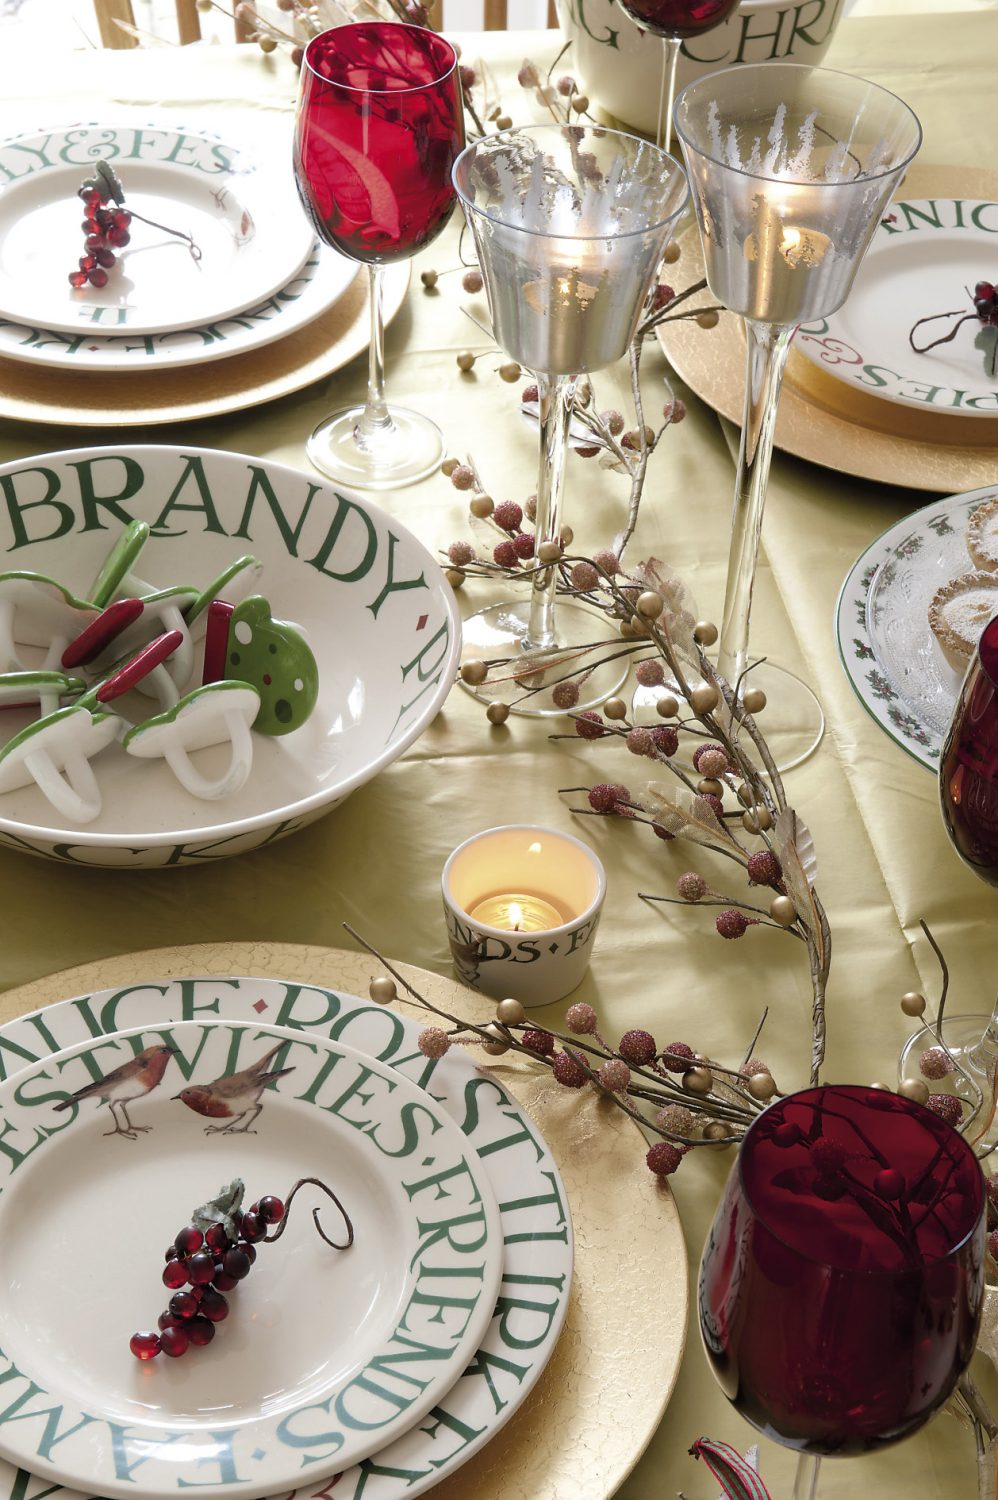 The dining table in the living room is laid with Christmas crockery as well as cranberry glasses and a gold tablecover strewn with faux berries and silver stars